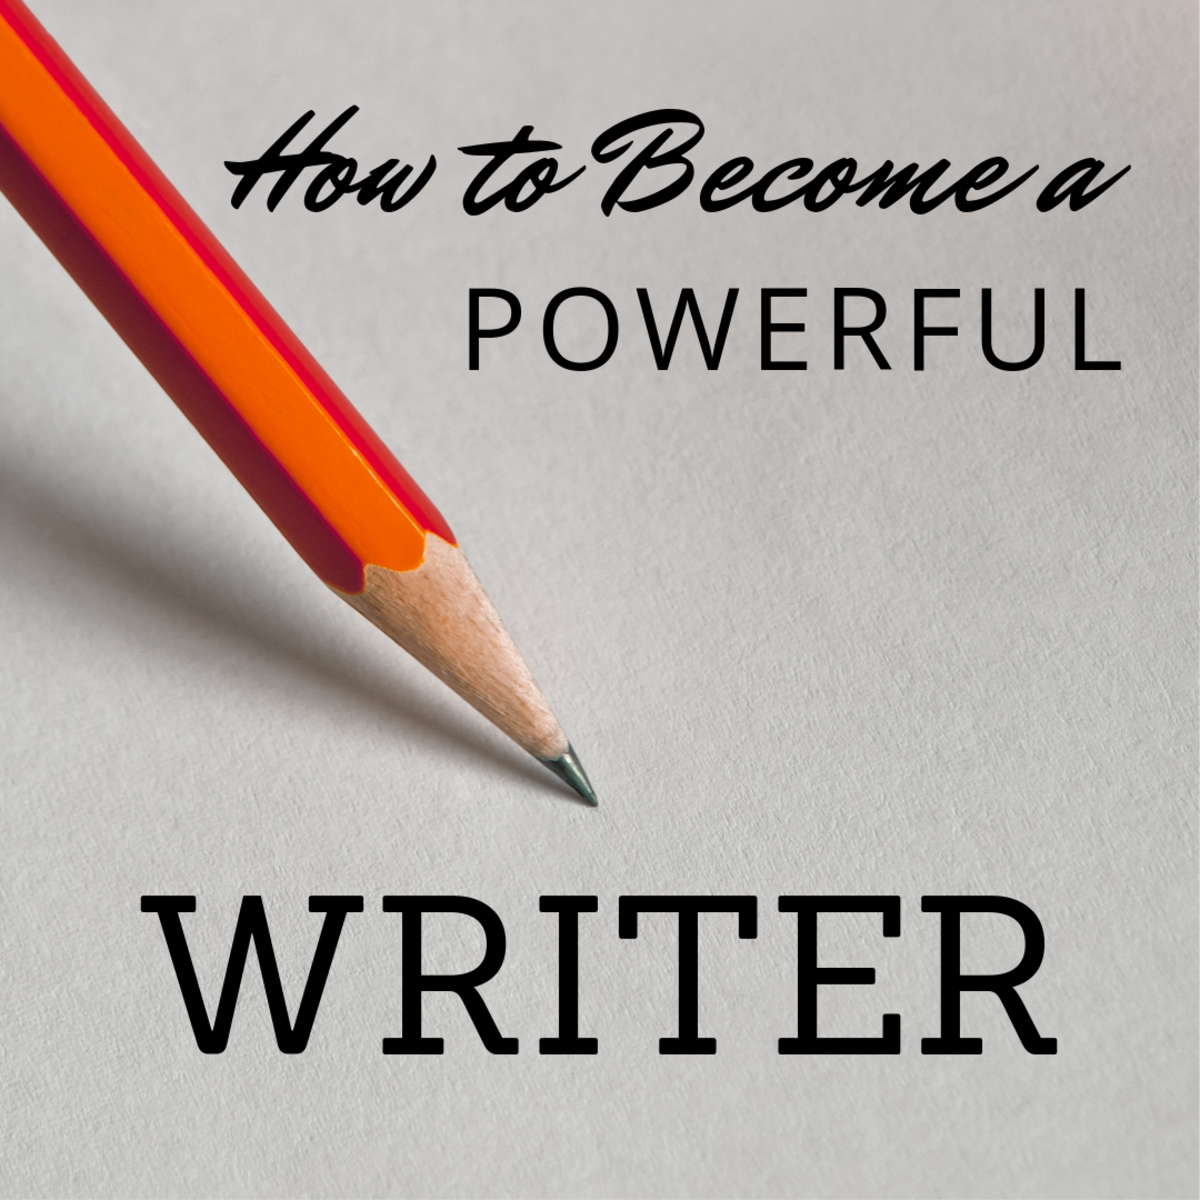 How to Become a Powerful Writer